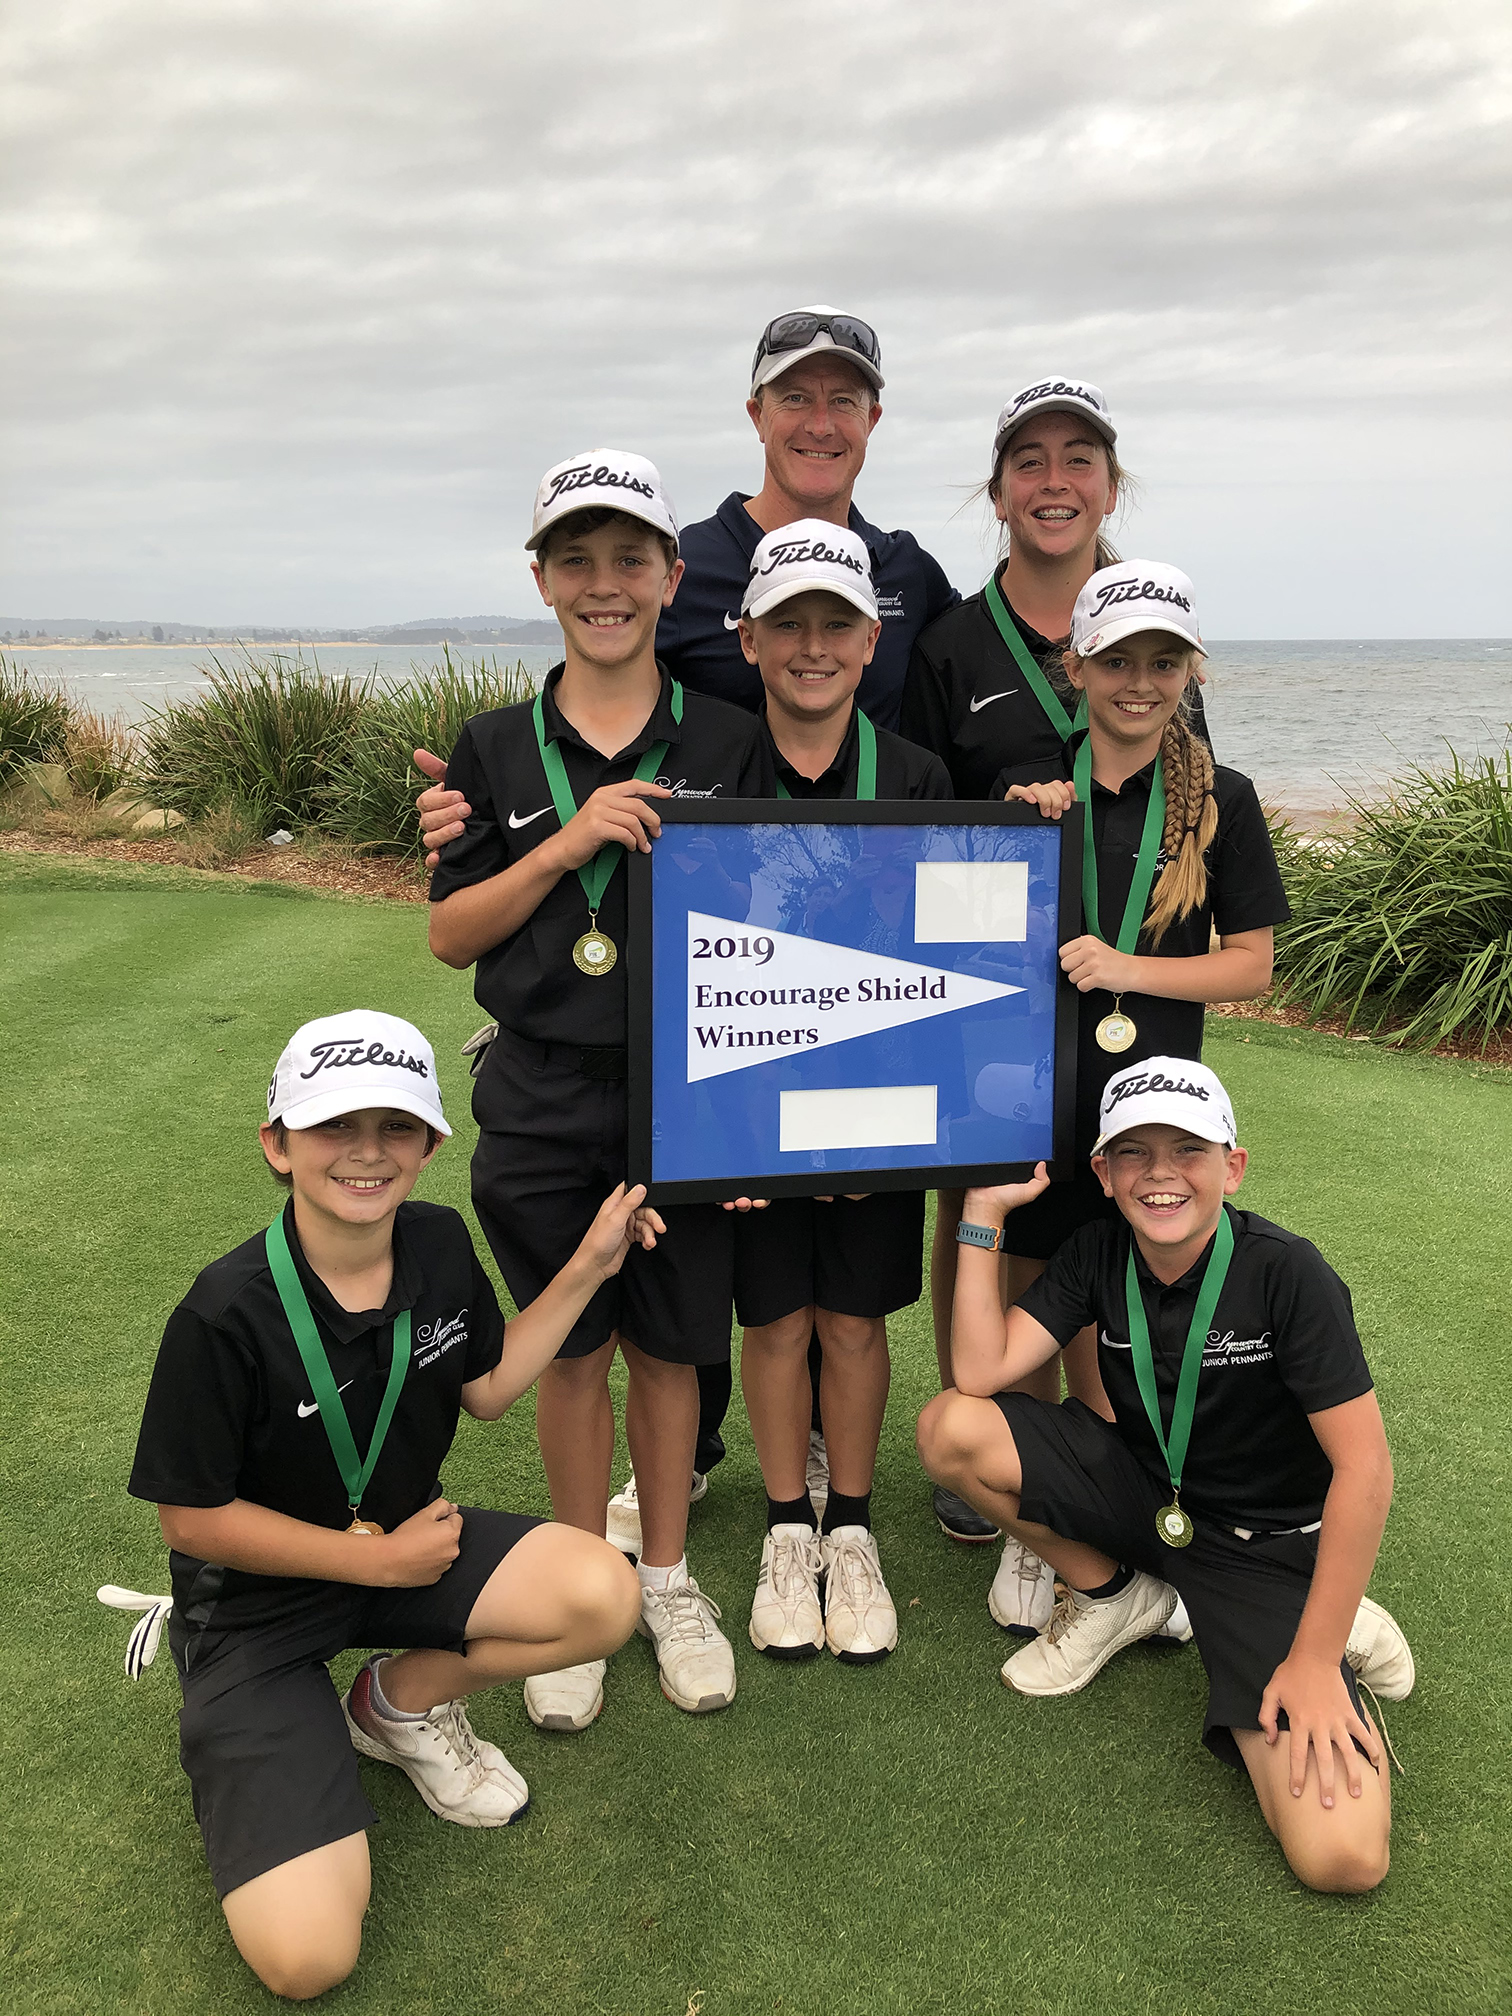 Lynwood defeated Northbridge to win 2019 Encourage Shield at Long Reef GC